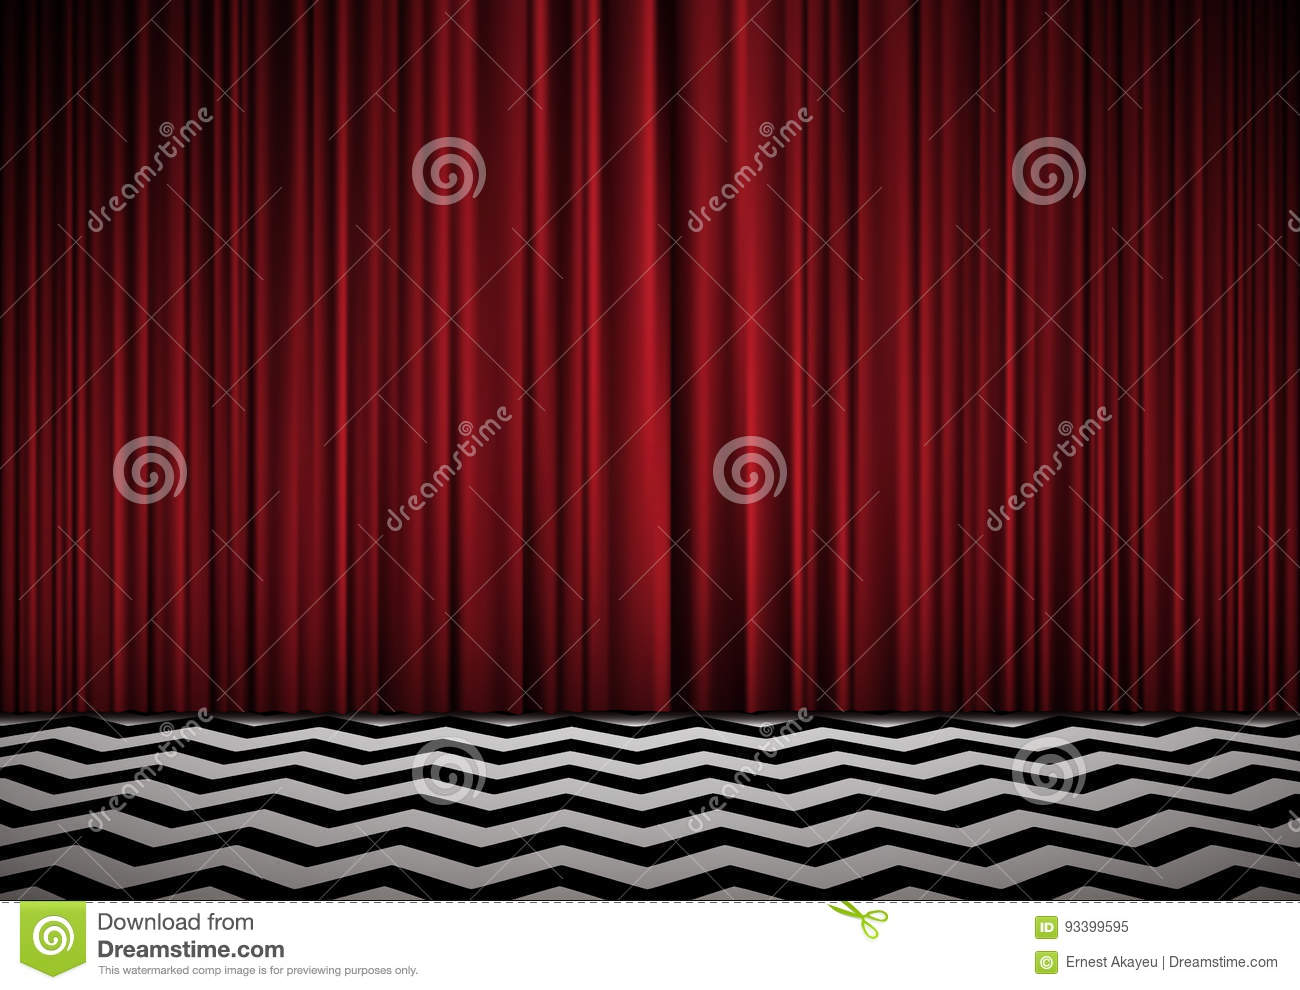 image rw vector sb theatre theater seats pm opera concept red velvet illustration for background storyblocks classic curtains show stock premiere scene presentation b realistic ceremony with curtain scarlet luxurious